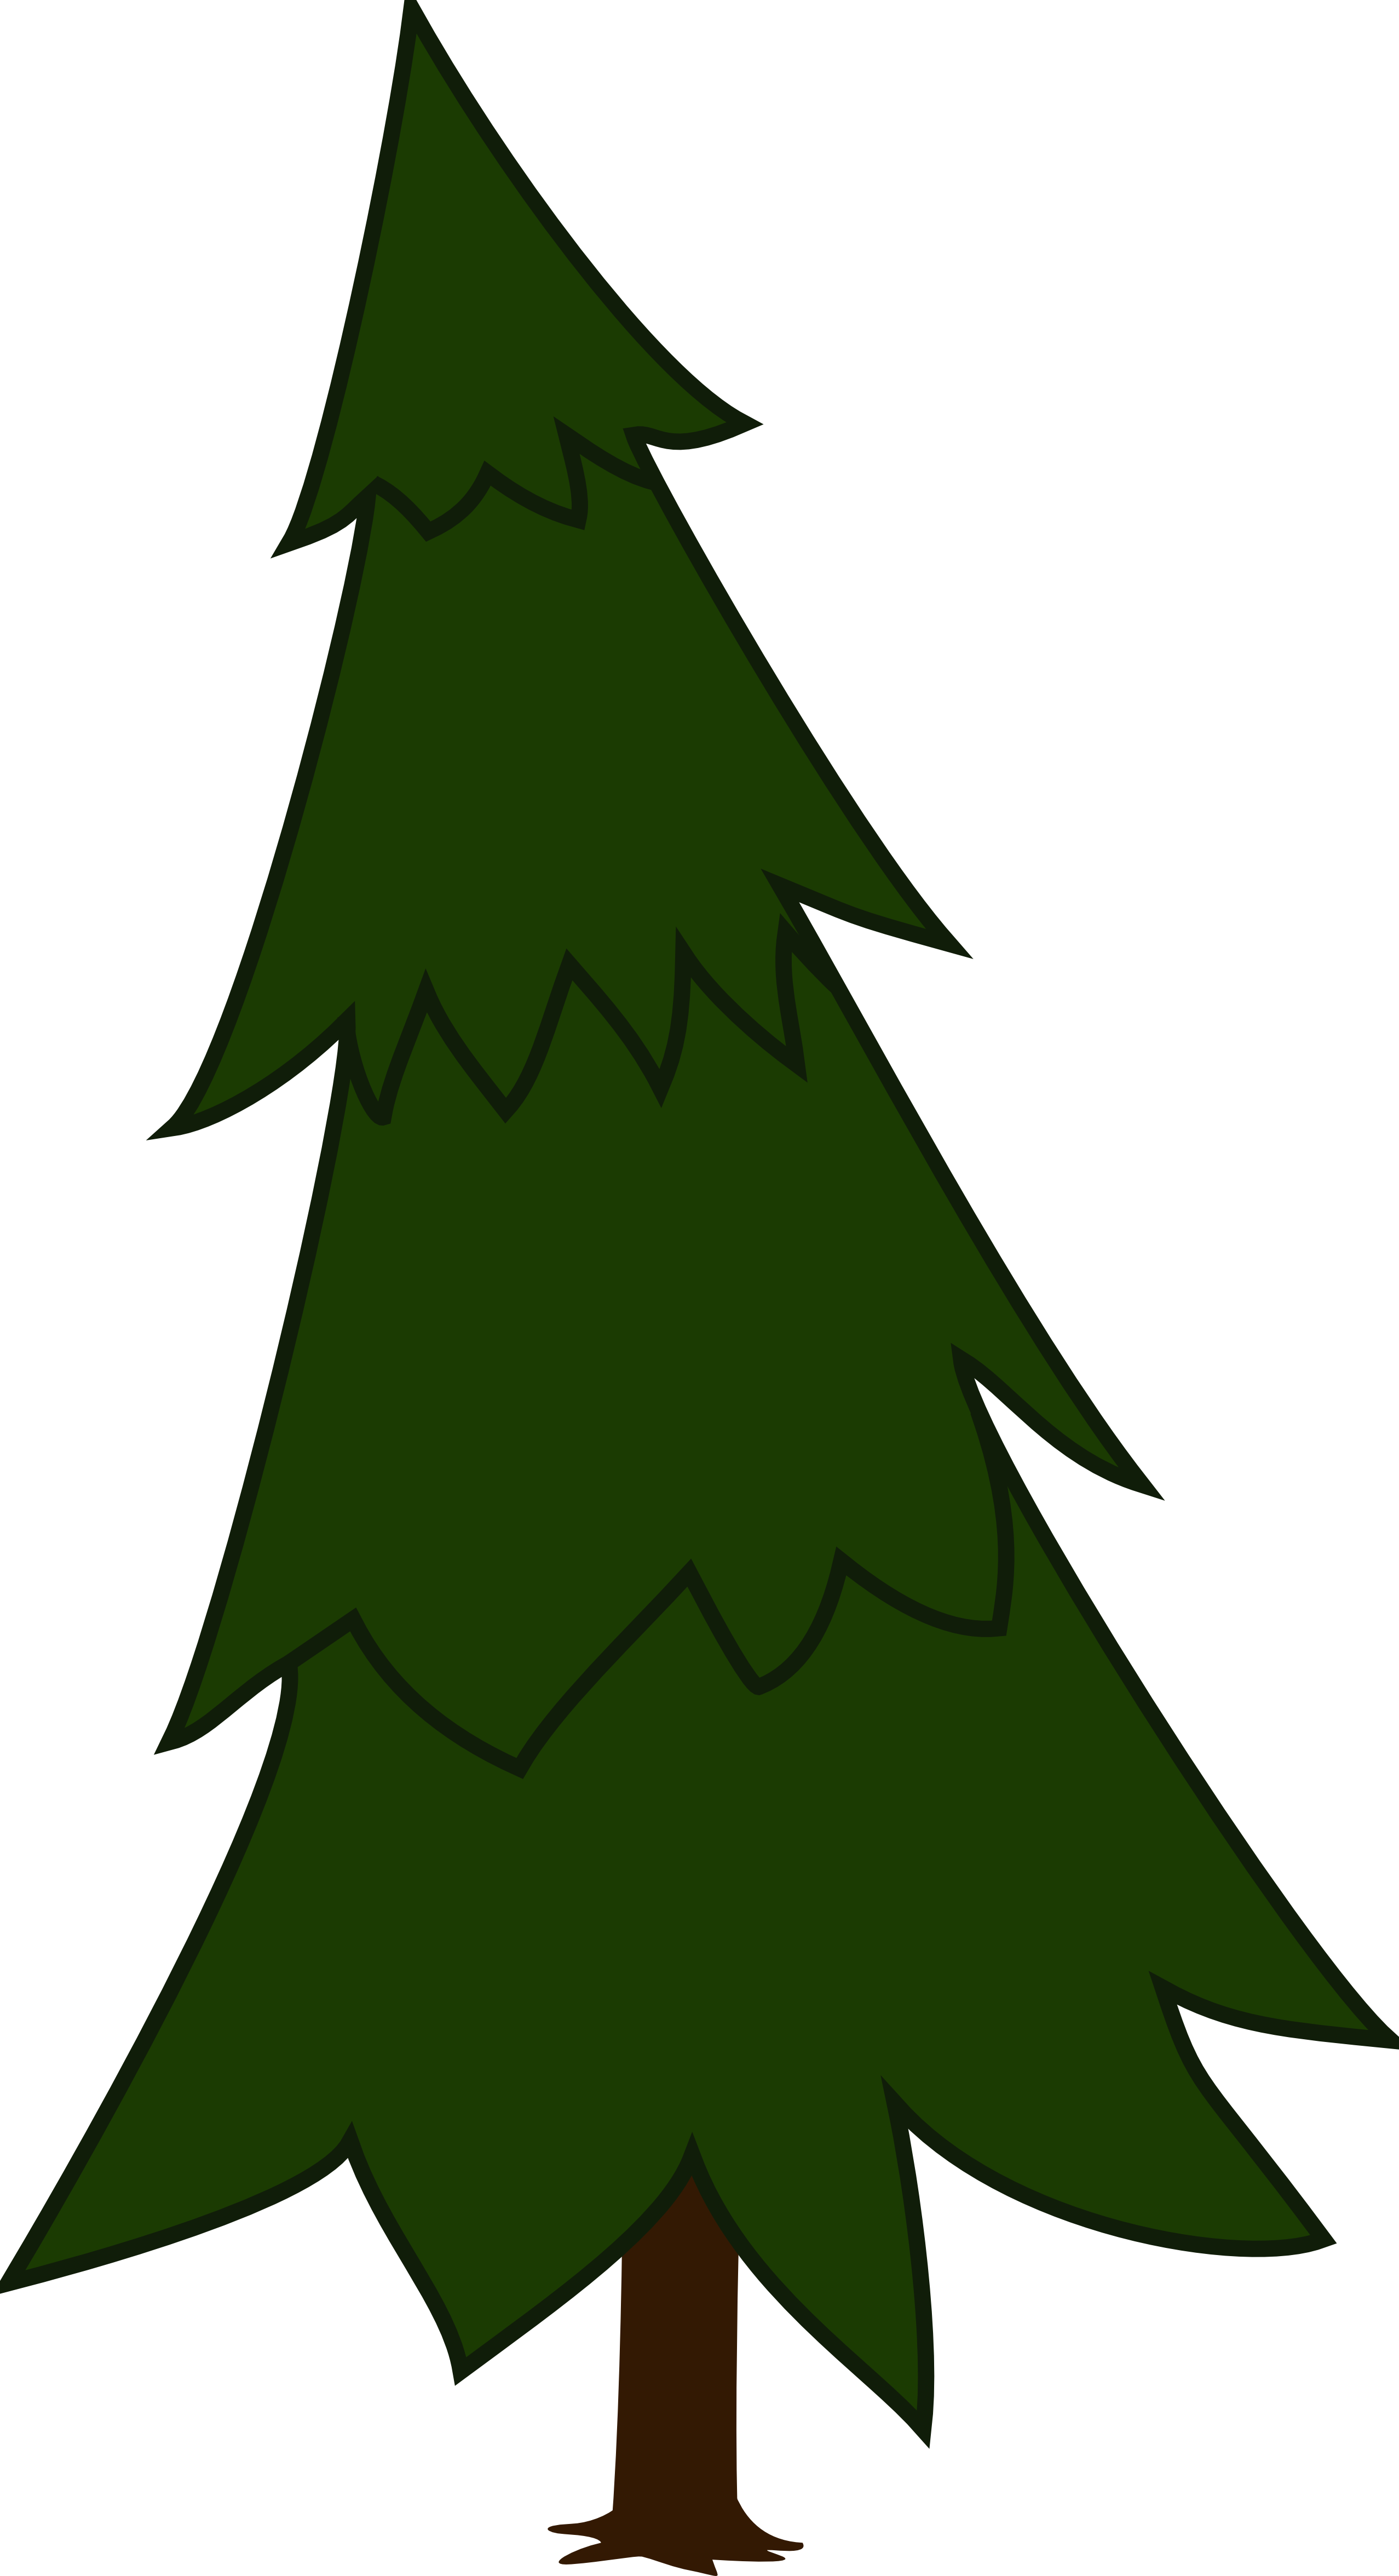 Clipart of a spruce tree line art.